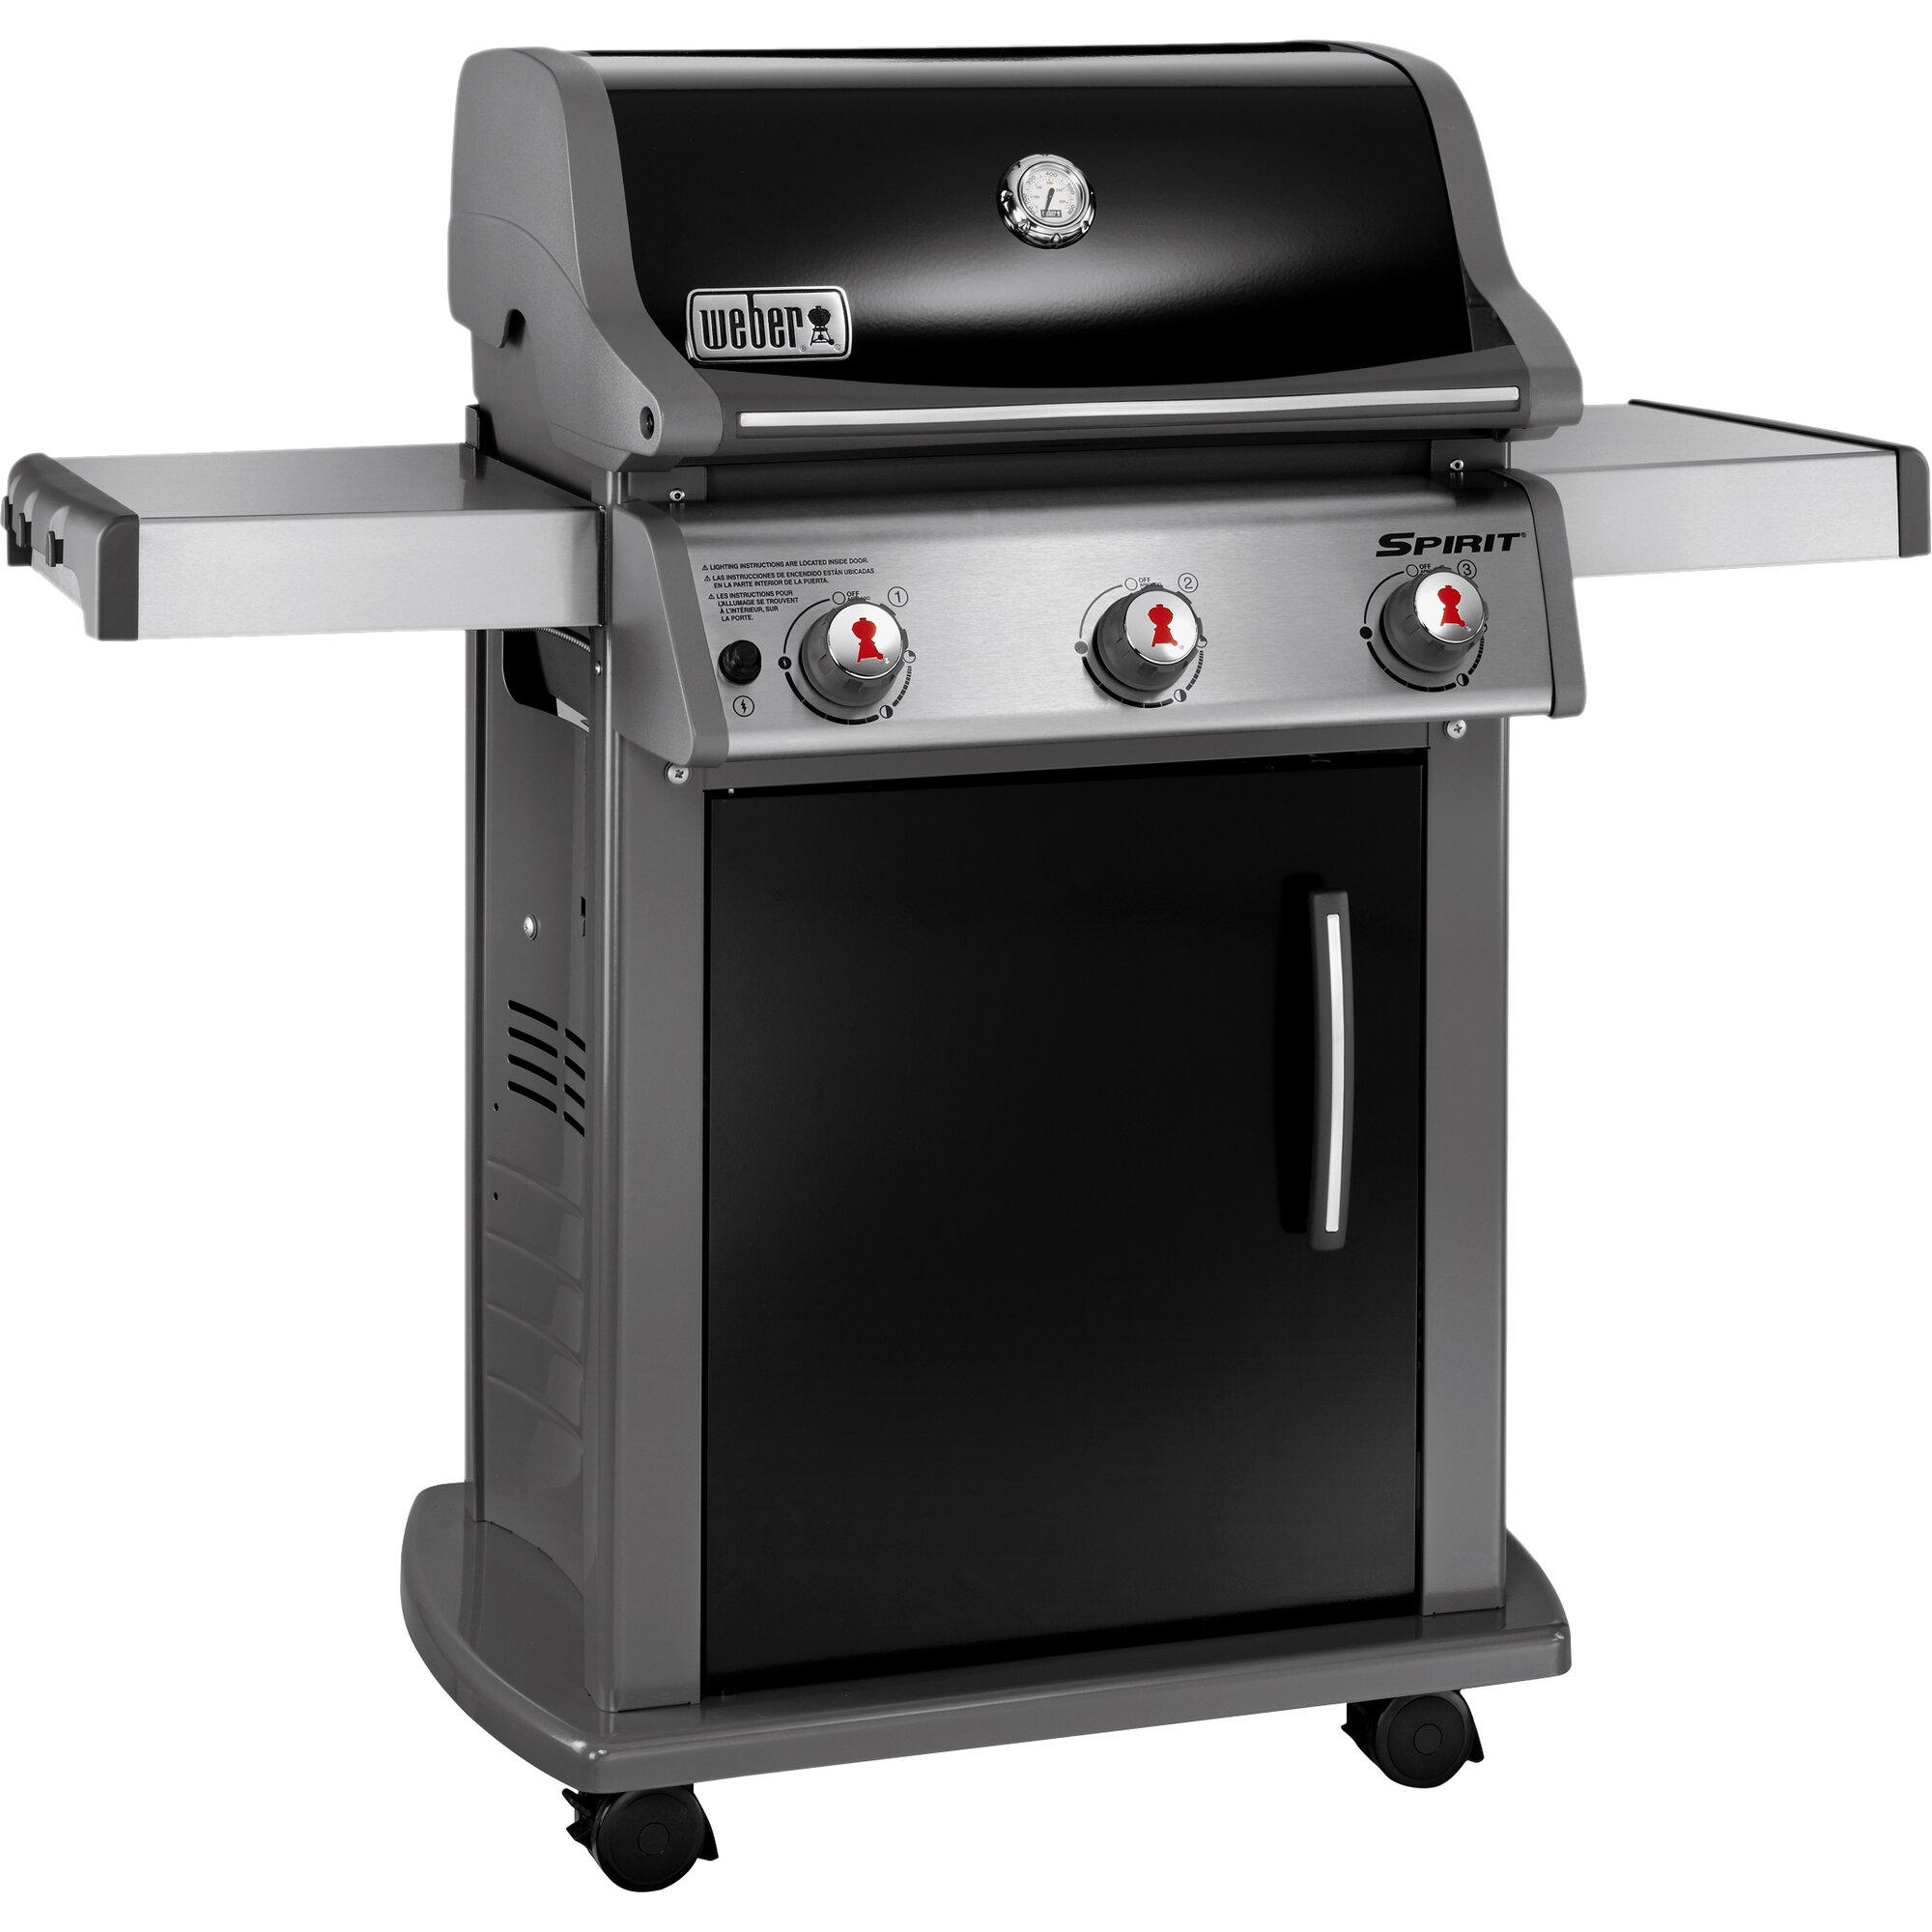 Kitchenaid 4 Burner Dual Energy Outdoor Gas Grill Reviews ...